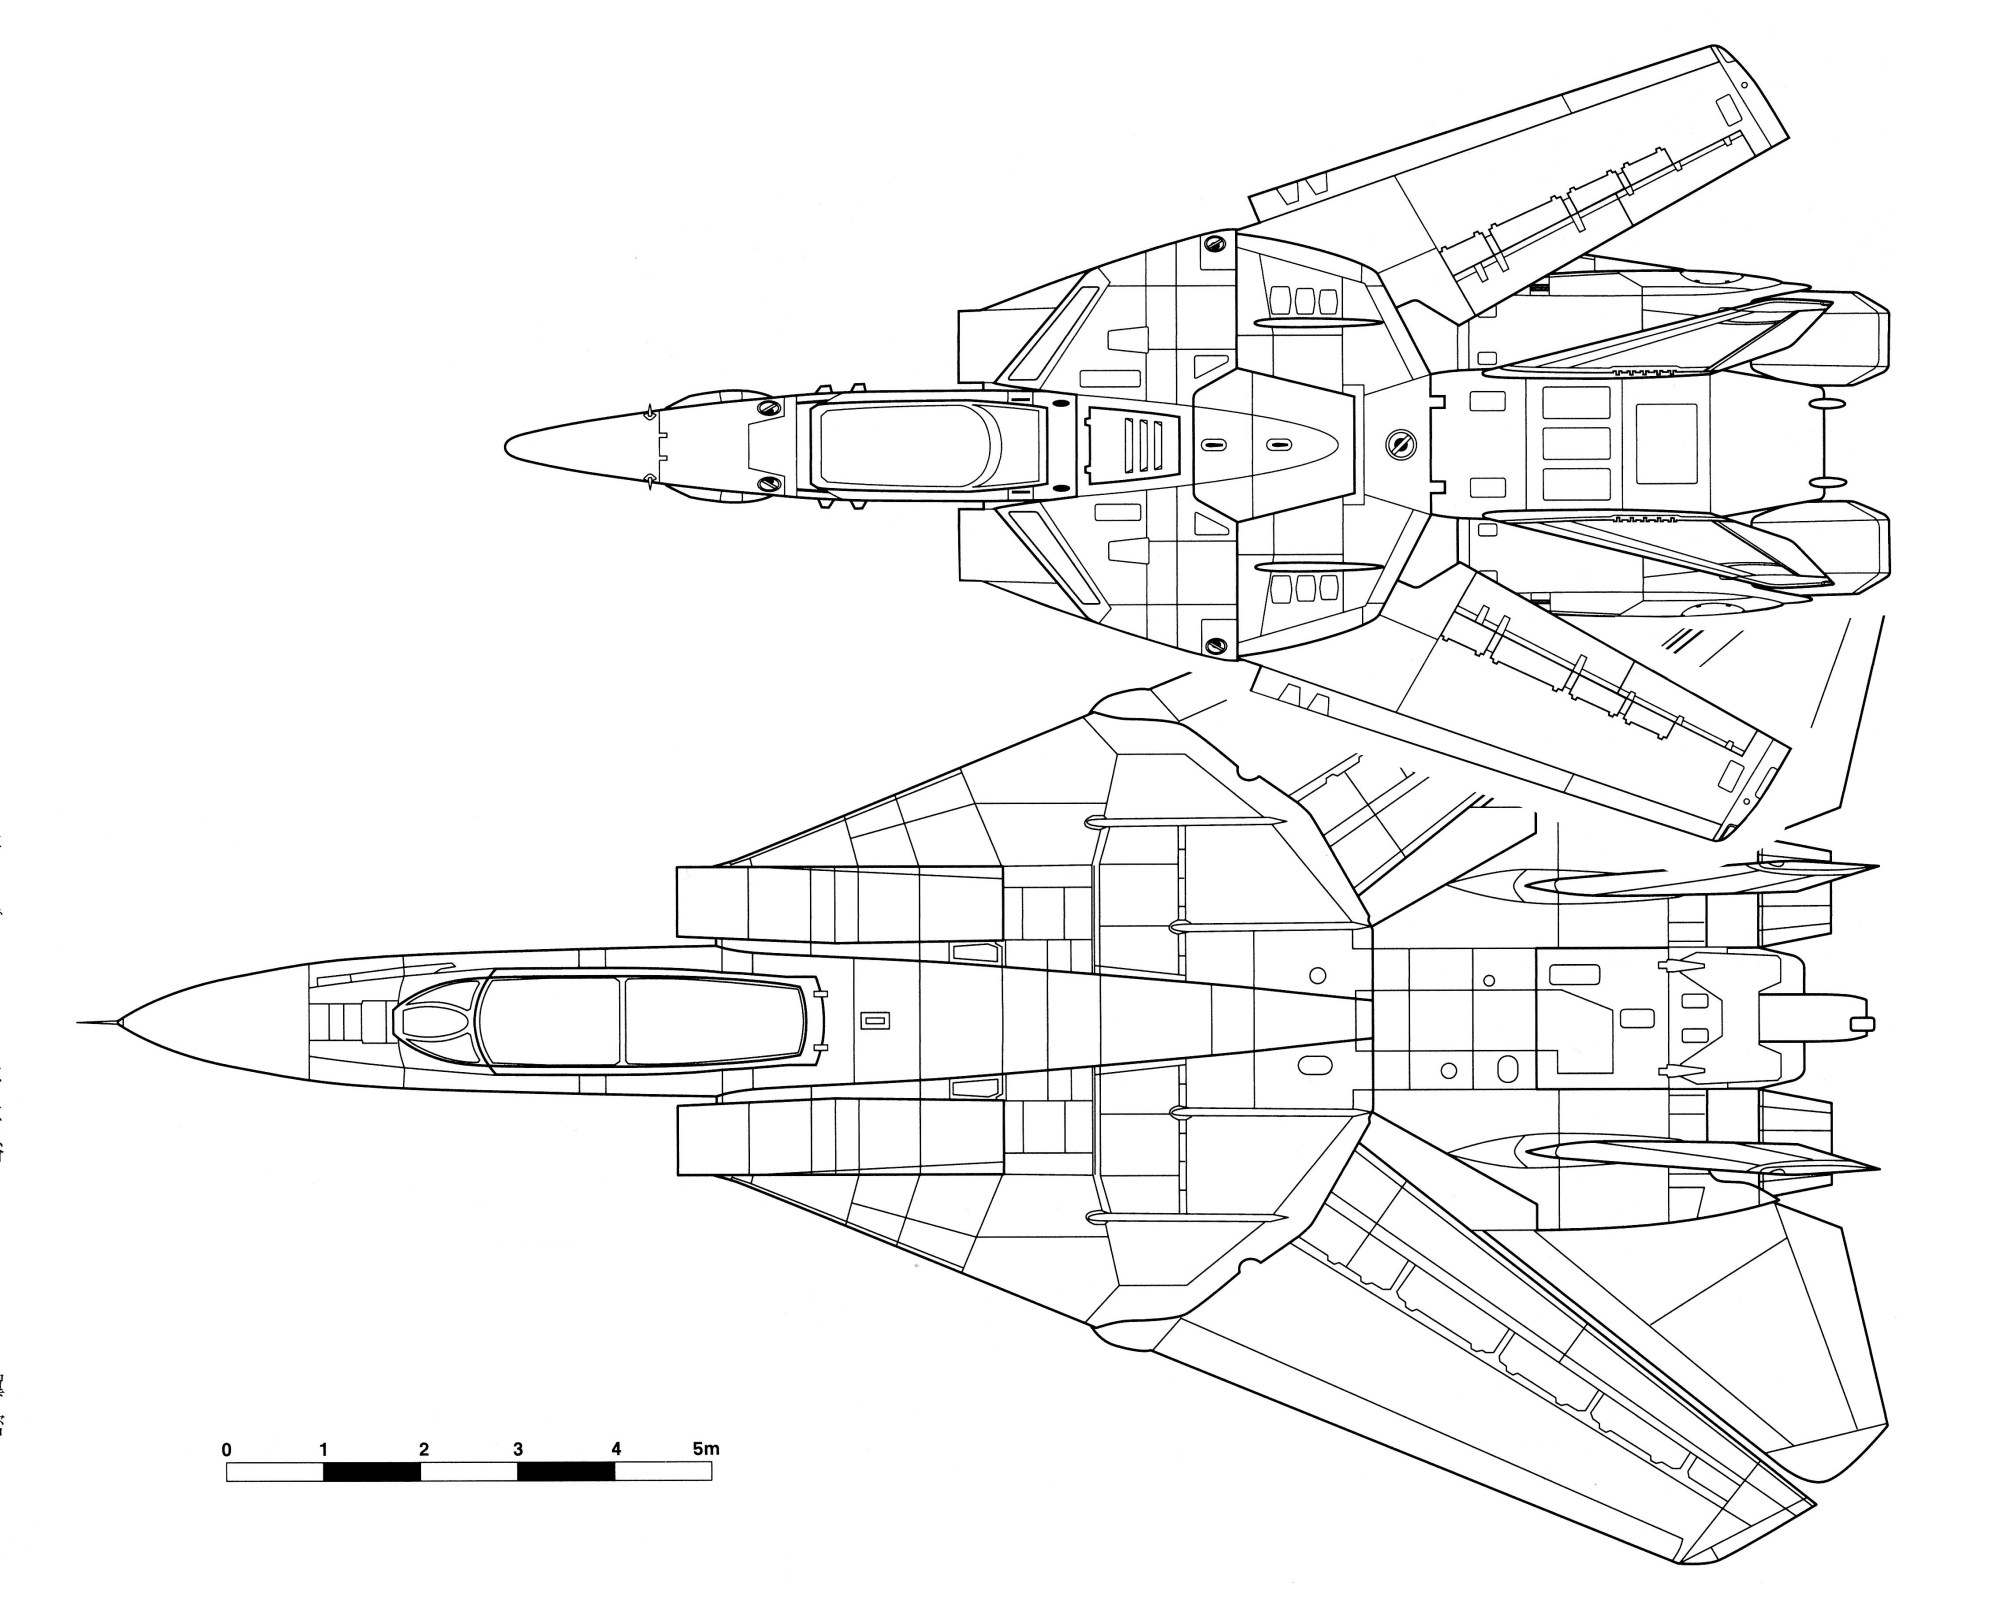 hight resolution of size comparison between the vf 1 valkyrie and a pre war grumman f 14 tomcat